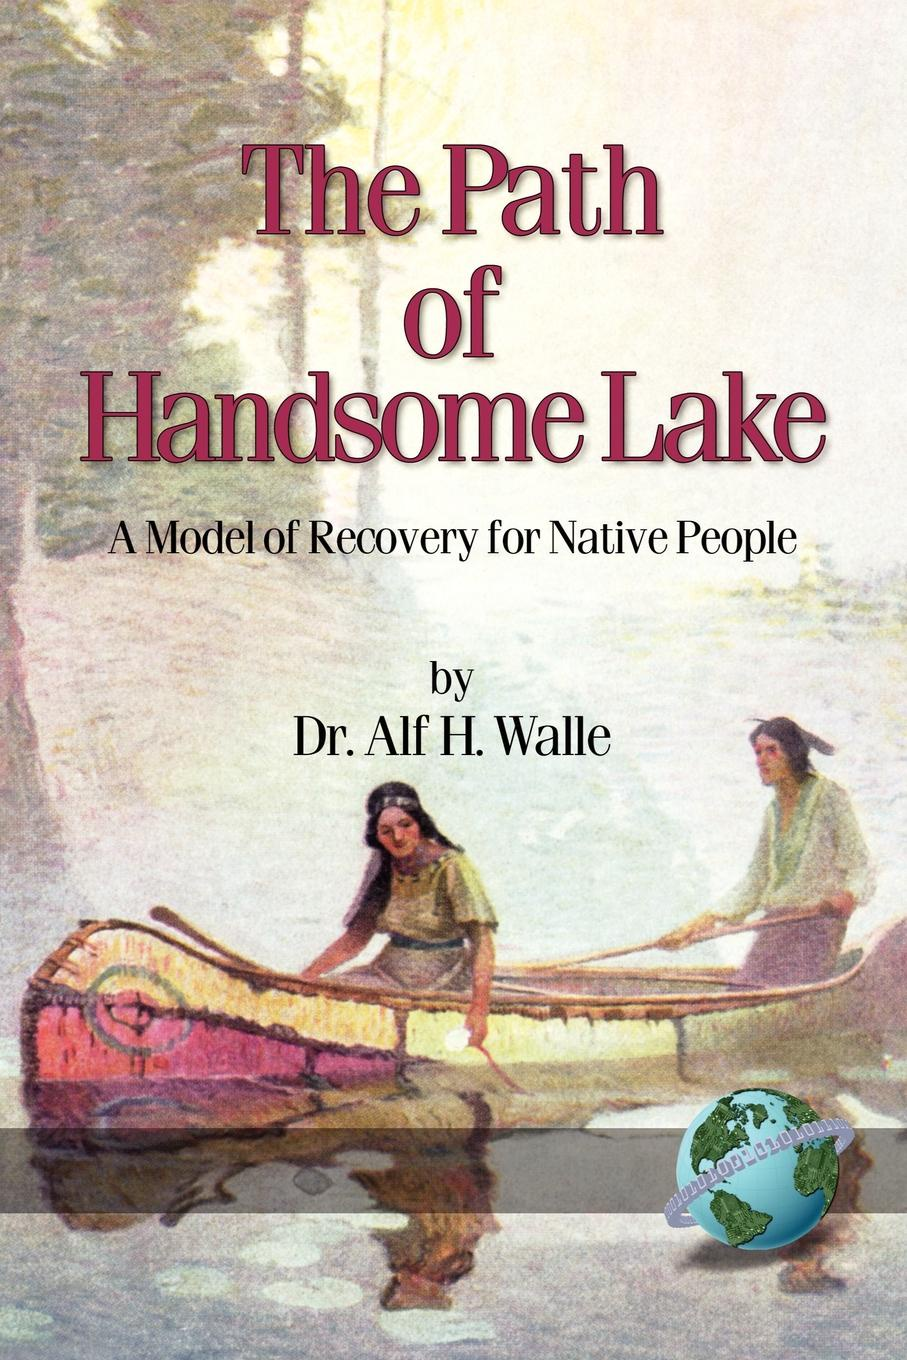 Alf H. Walle The Path of Handsome Lake. A Model of Recovery for Native People (PB) alf h walle recovery the native way a therapist s manual pb